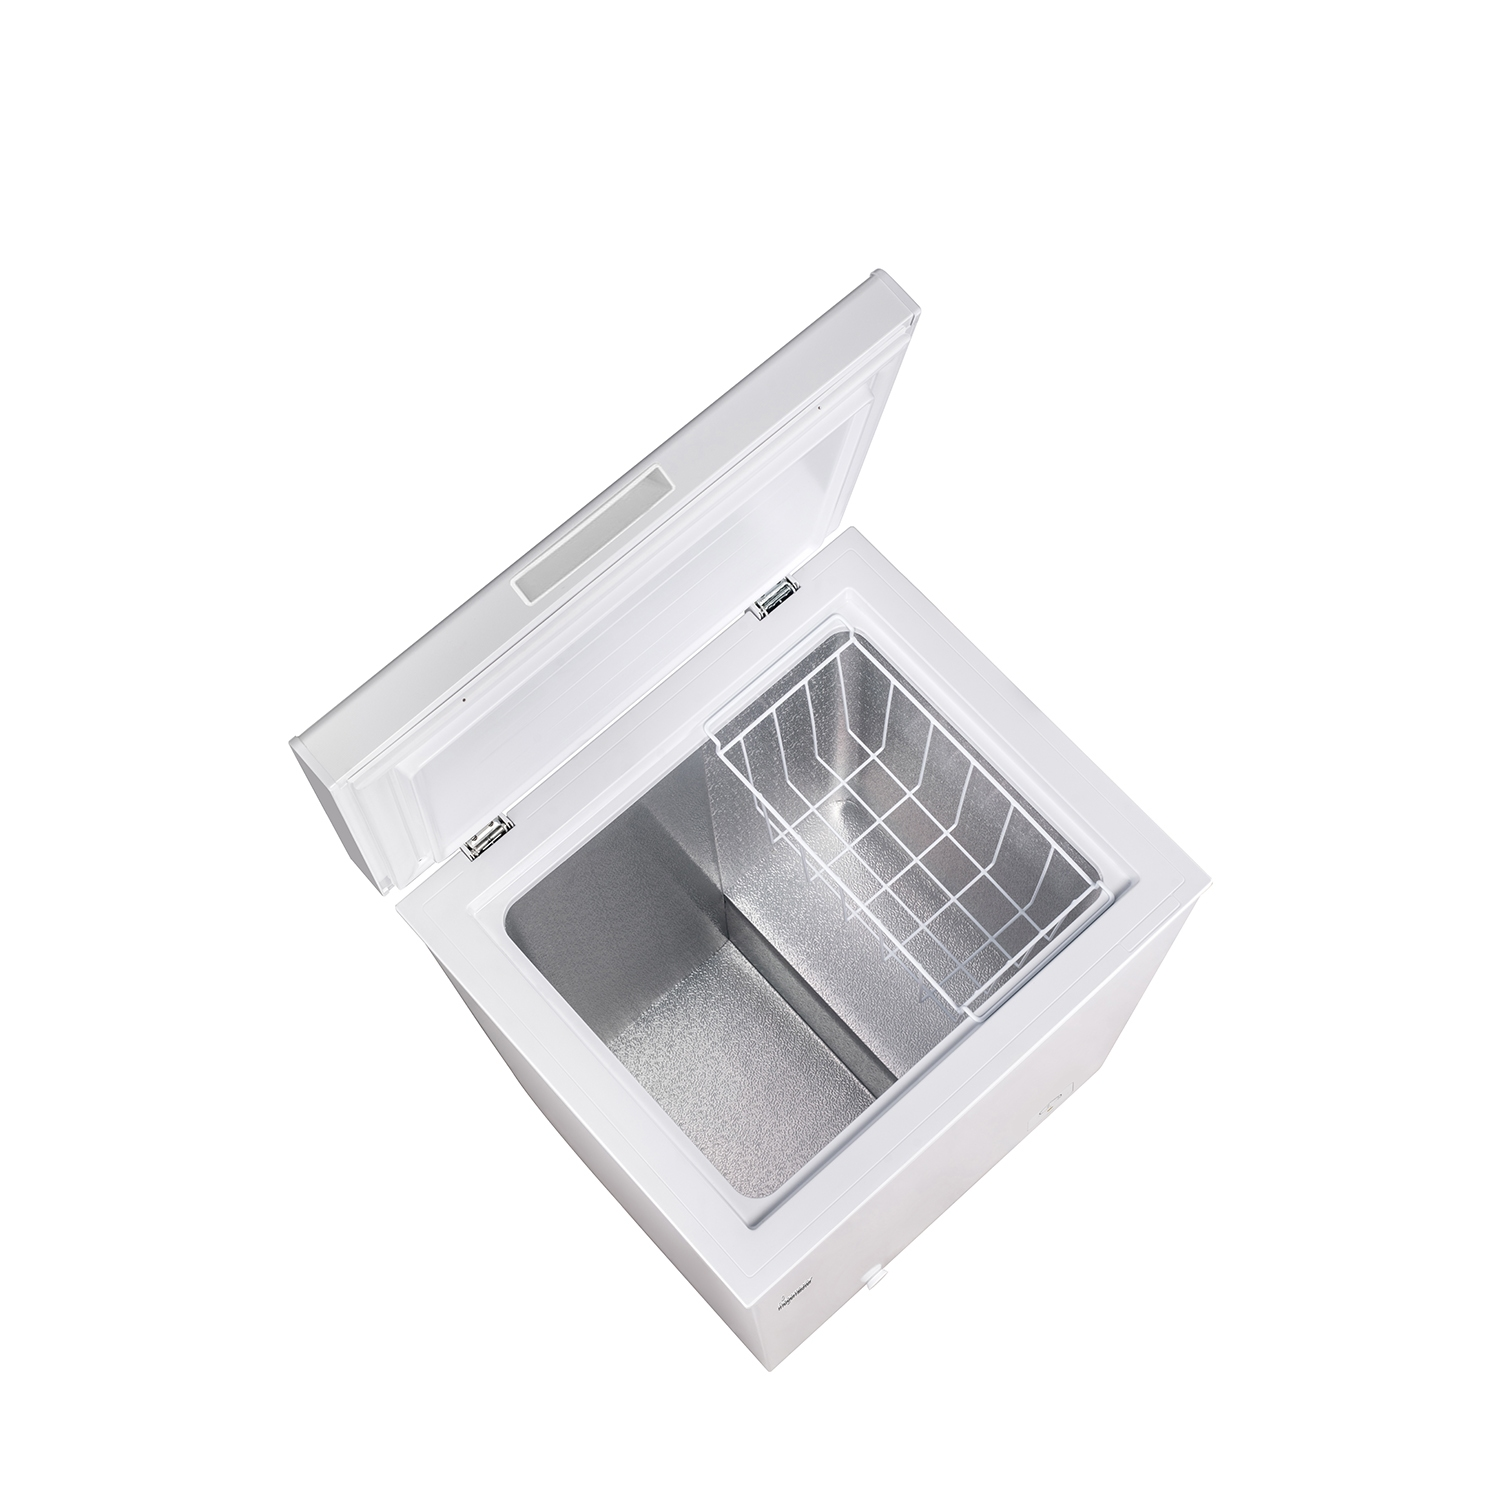 Fridgemaster 55cm Static Chest Freezer - White - A+ Energy Rated - 4